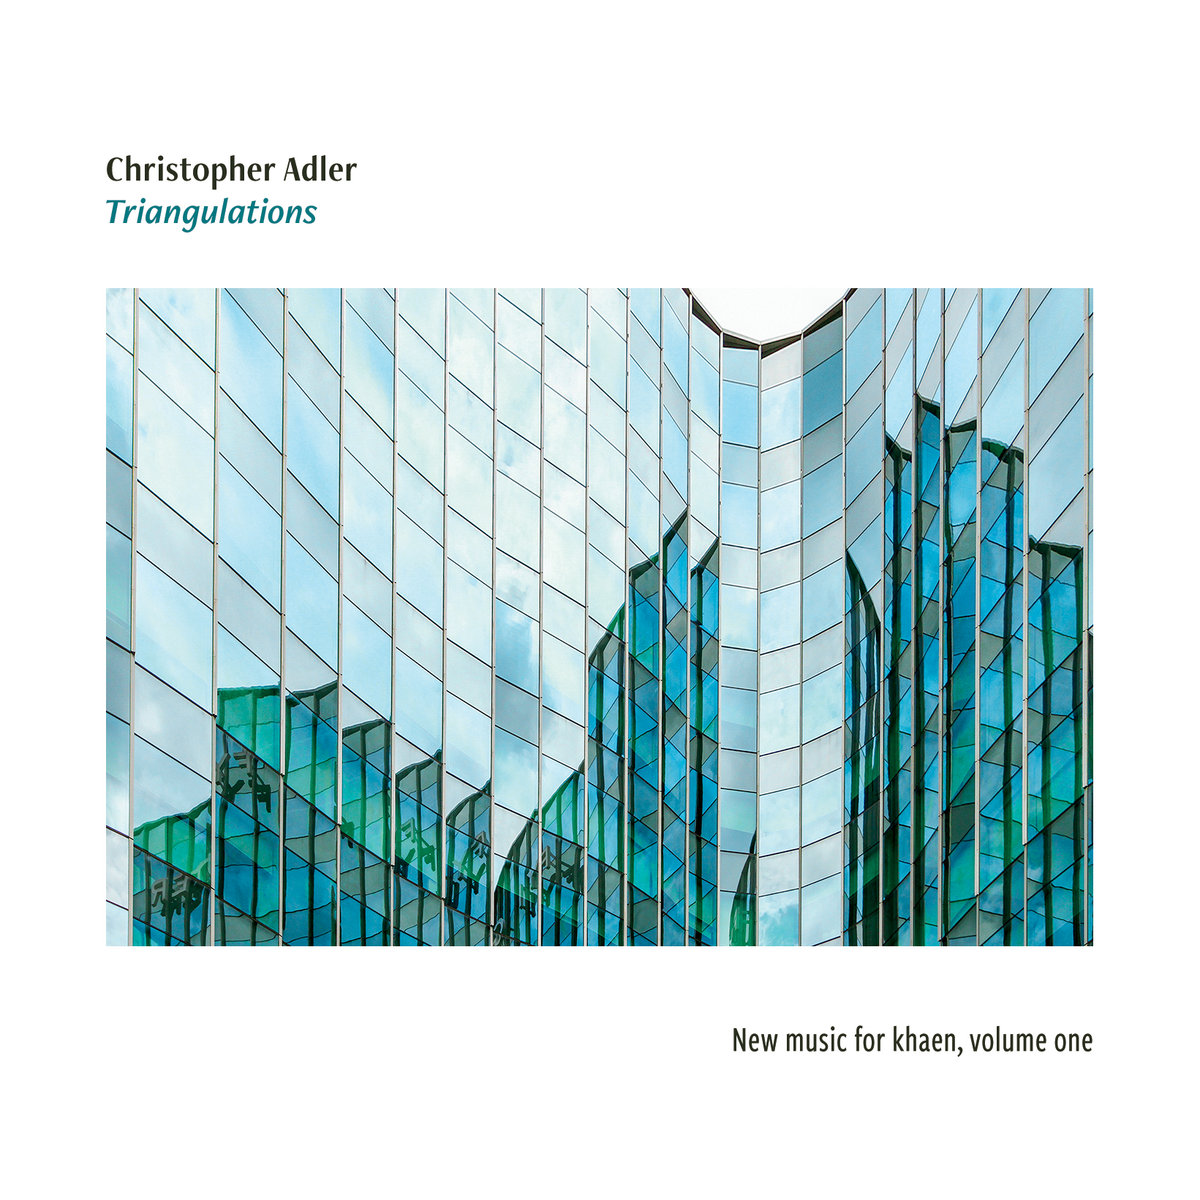 """Album cover of Christopher Adler's """"Triangulations, with a close of picture of angled window exterior of modernist architecture."""